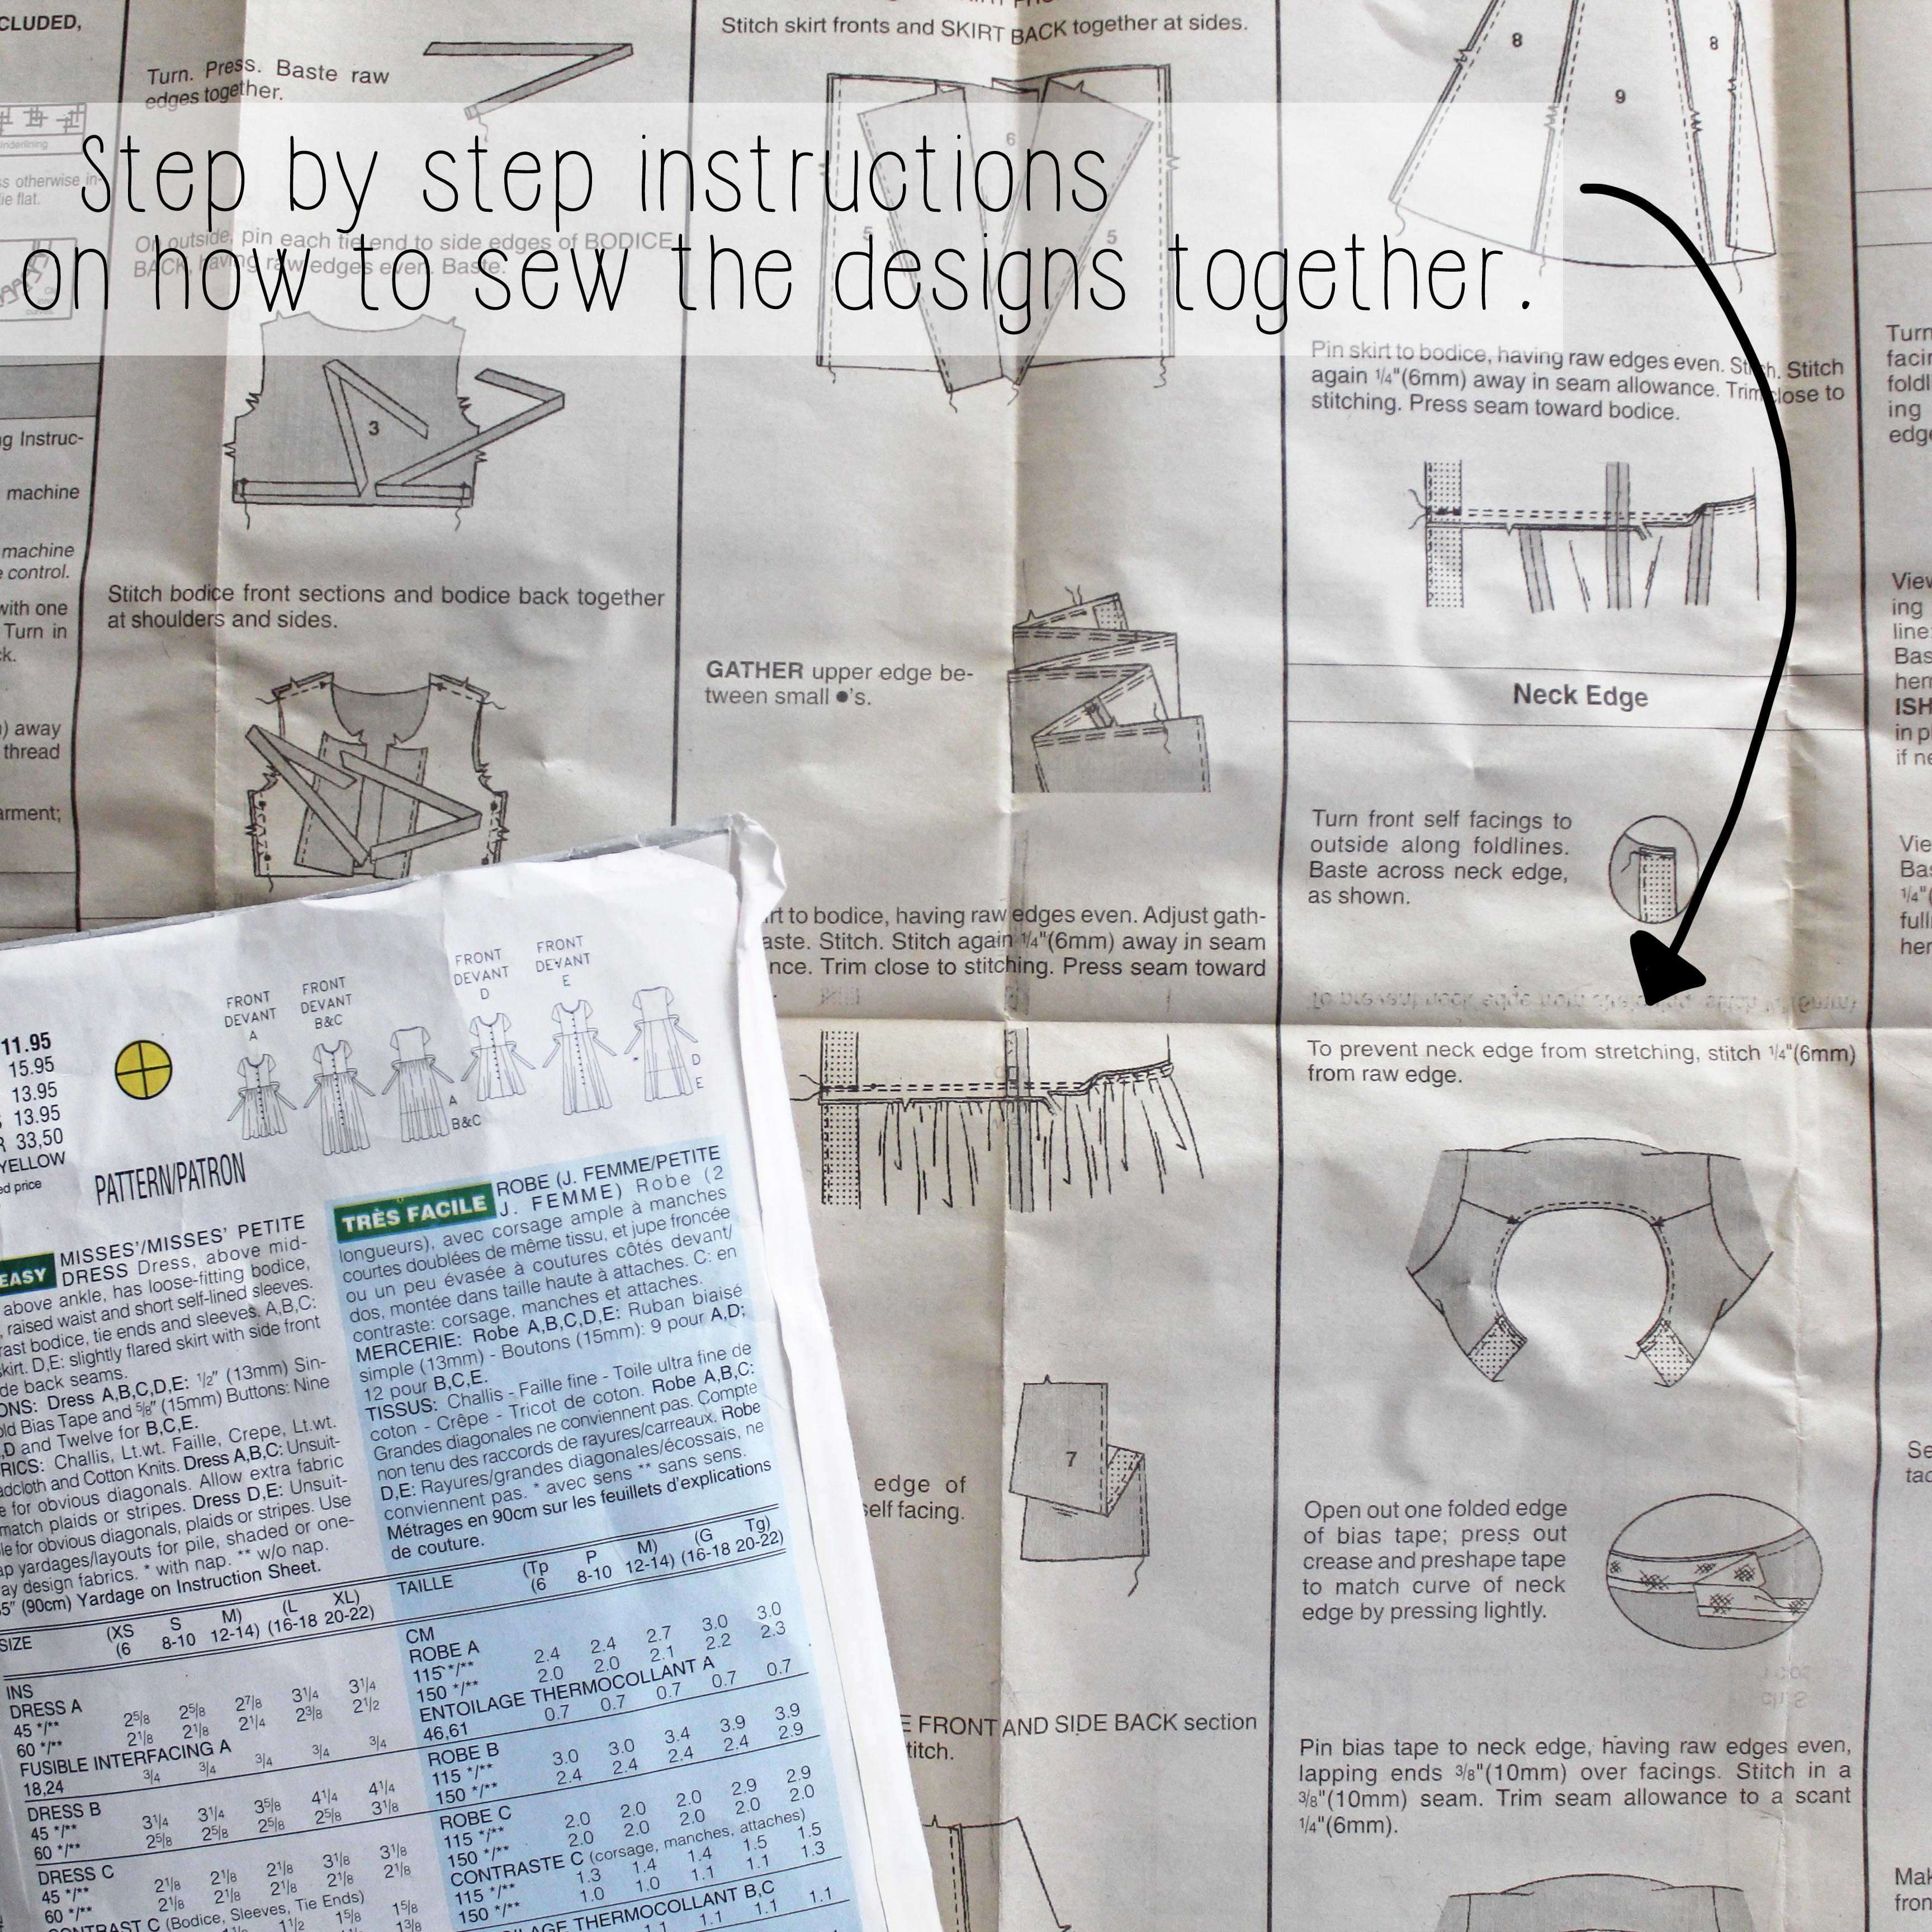 How To Read A Sewing Pattern Step By Step Instructions